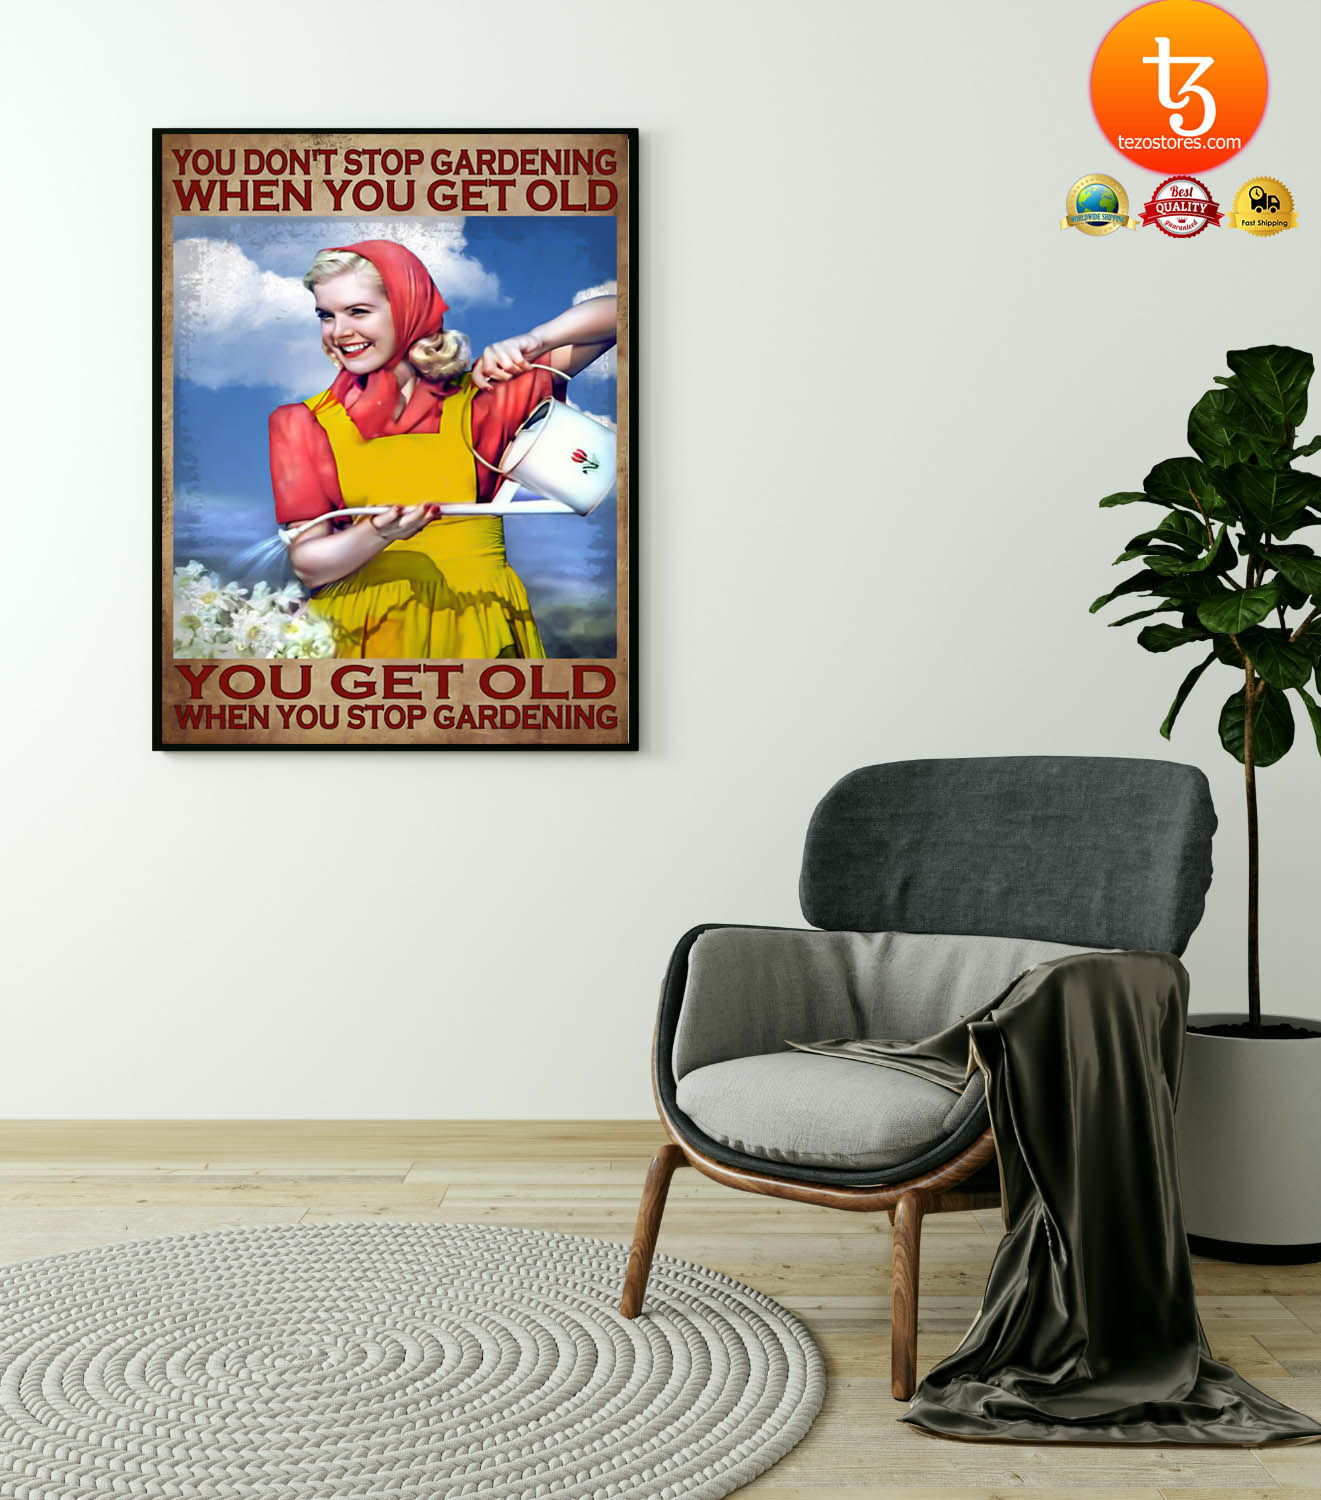 You don't stop gardening when you get old poster 21